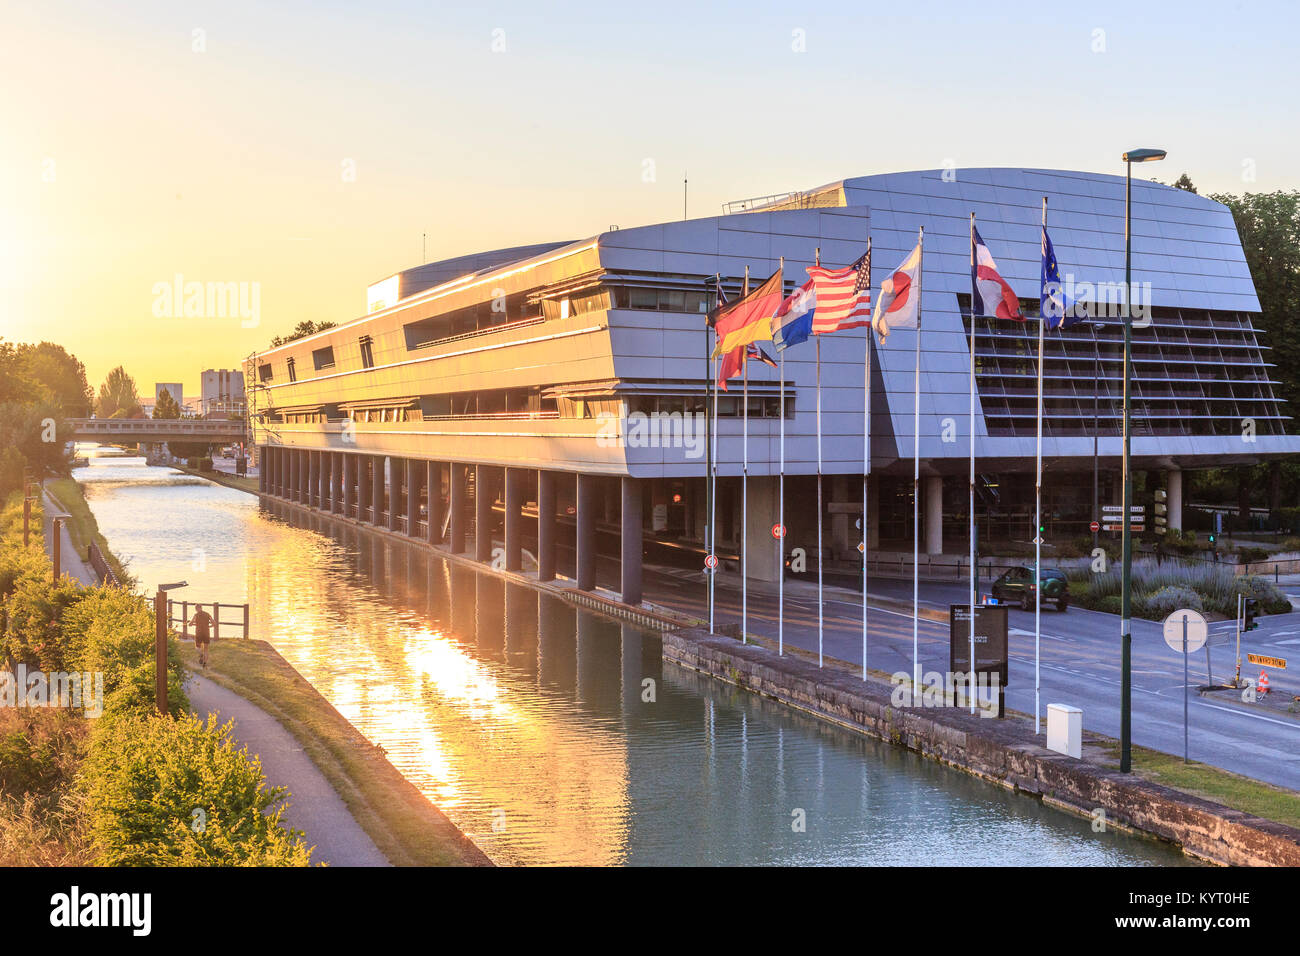 Architecte stock photos architecte stock images alamy for Claude vasconi architecte